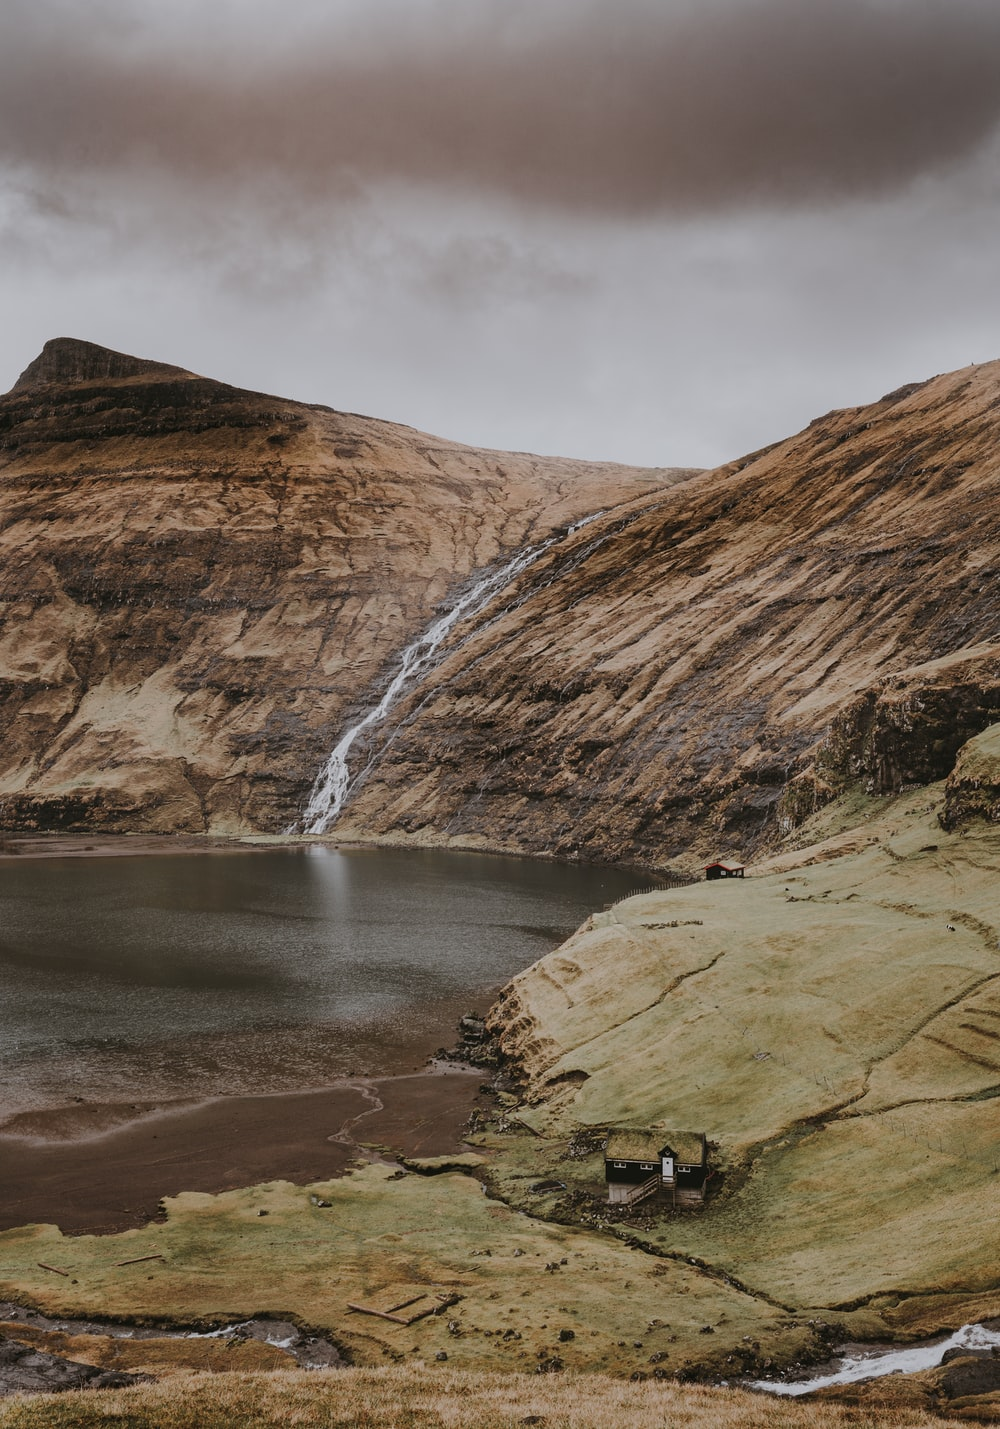 brown rock mountain with waterfalls